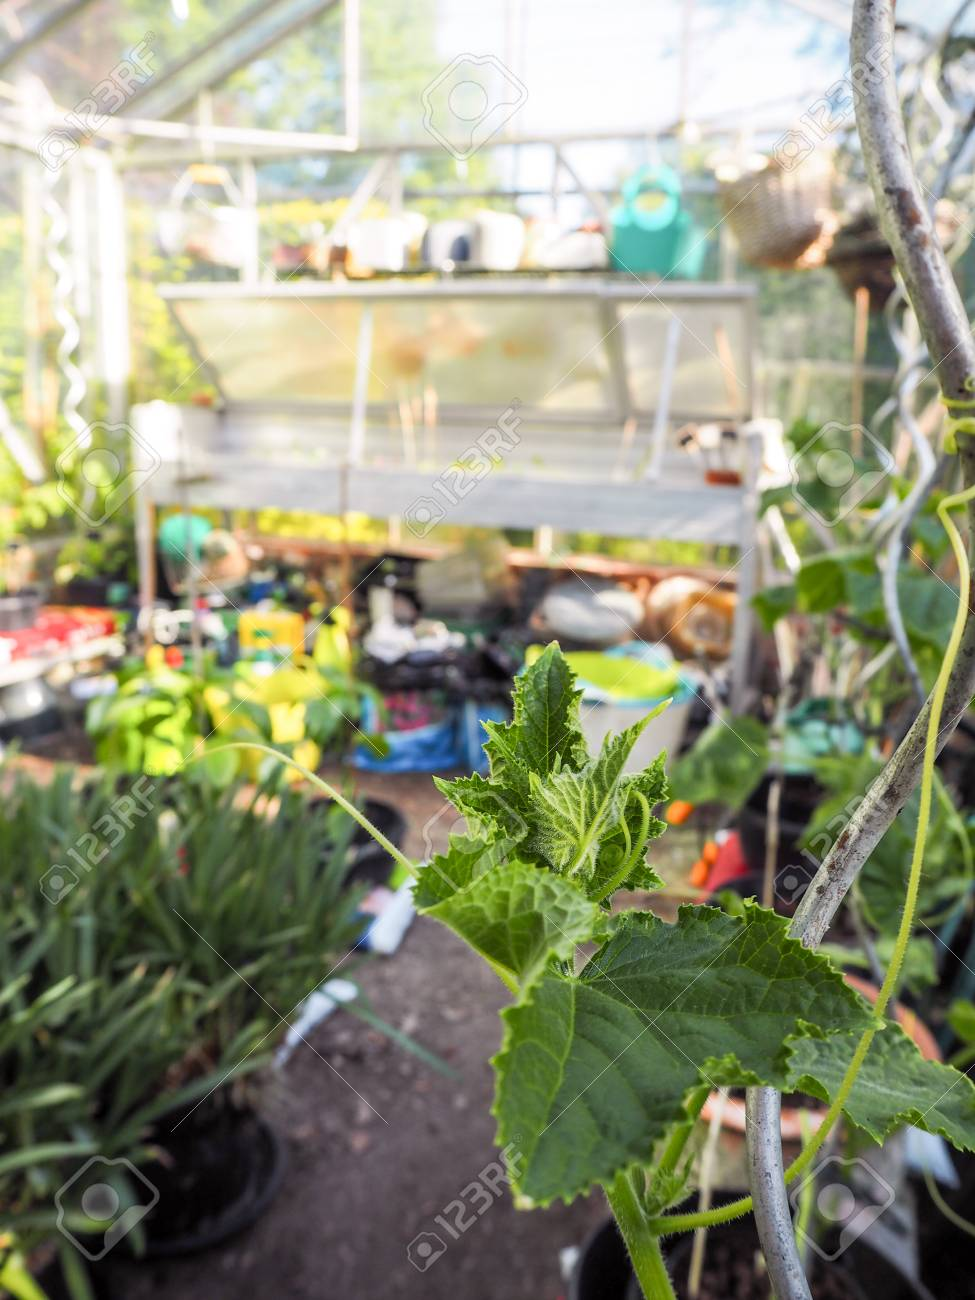 Fantastic Growing Cucumber Plants At Home In A Small Greenhouse Home Interior And Landscaping Oversignezvosmurscom